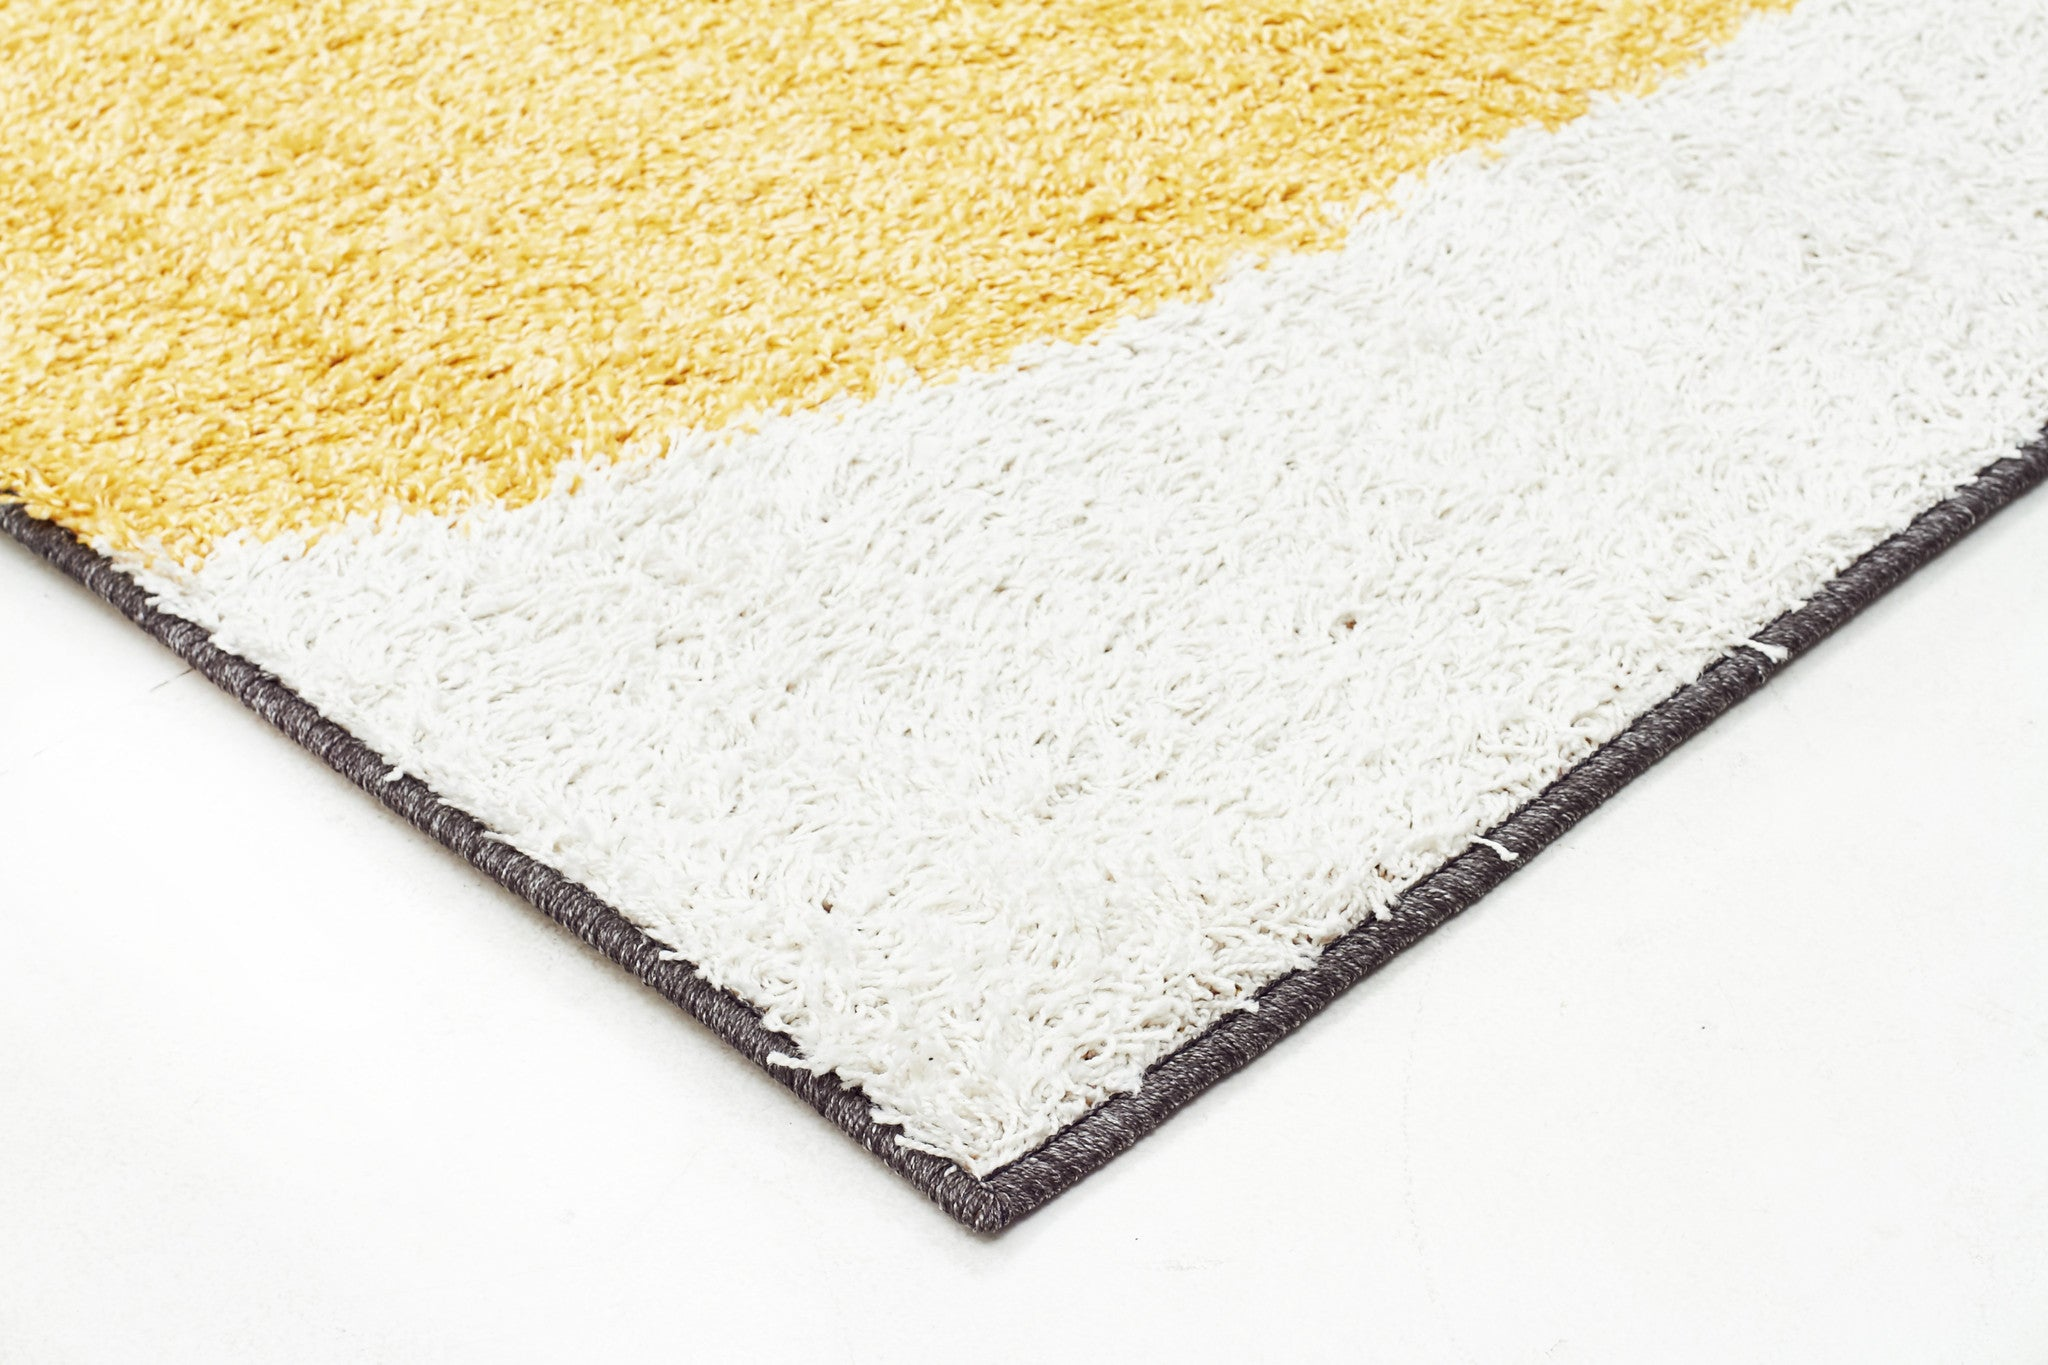 Viva 809 Shaggy Rug - Yellow Charcoal White